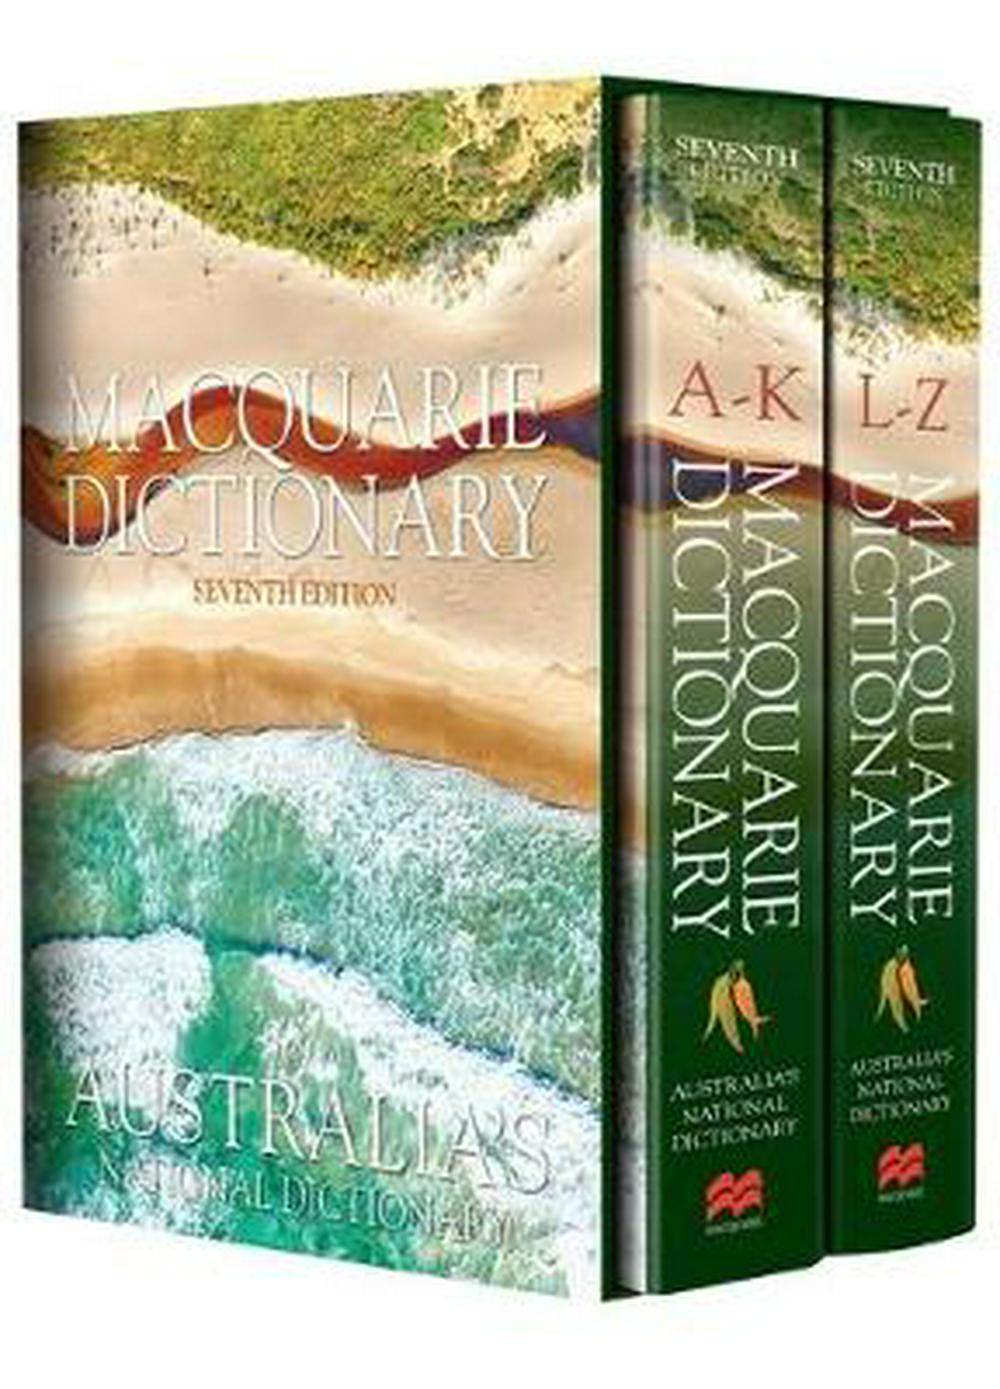 Macquarie Dictionary Seventh Edition by Macquarie Dictionary, ISBN: 9781742619811